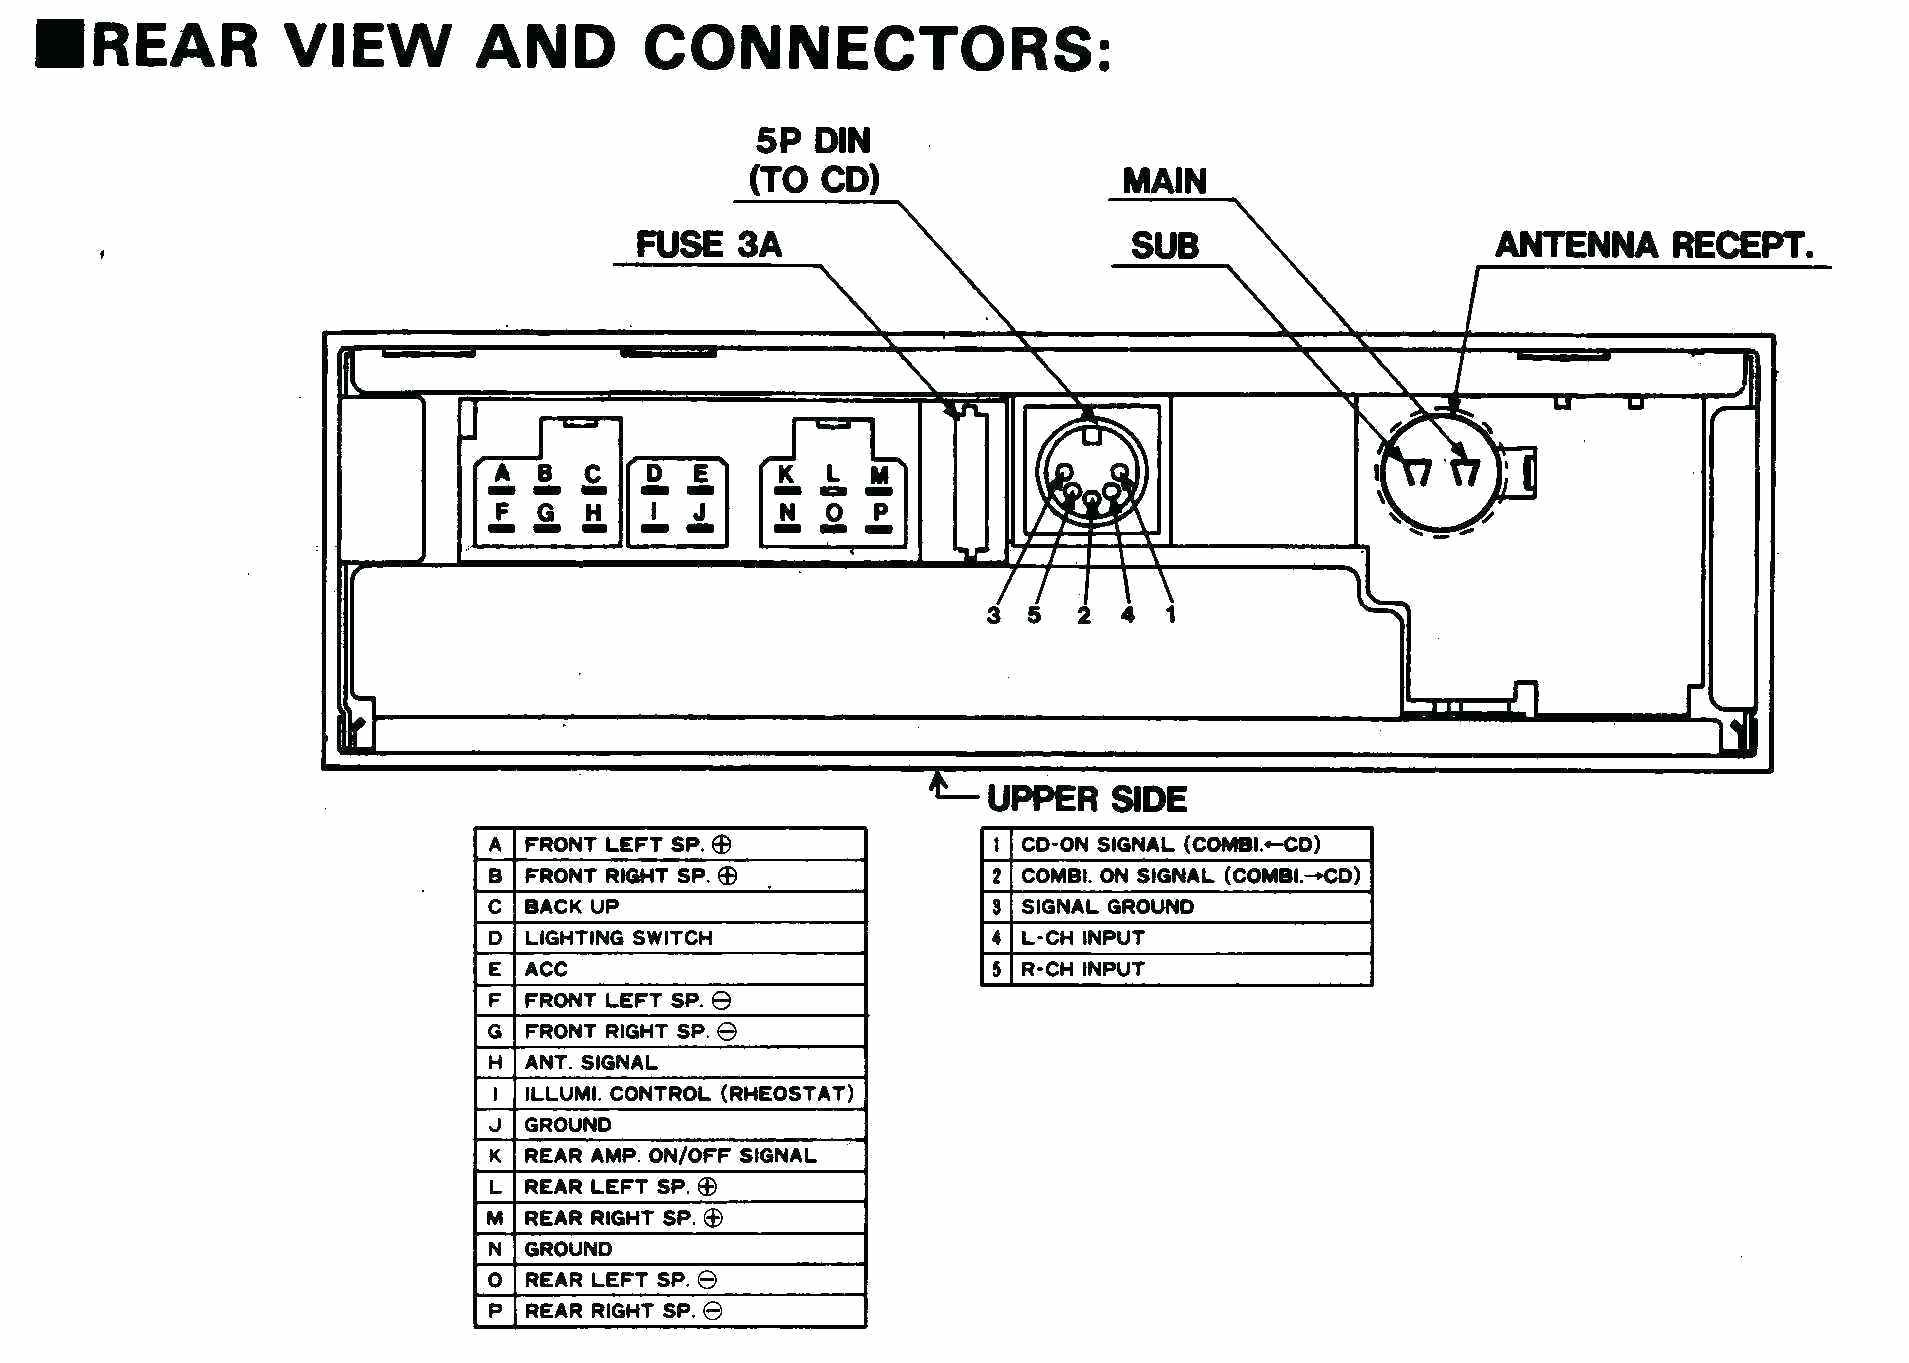 Sony Cdx Gt57up Wiring Diagram sony Xplod Cdx Gt25mpw Wiring Diagram Inside Gt250mp for Gt57up Of Sony Cdx Gt57up Wiring Diagram